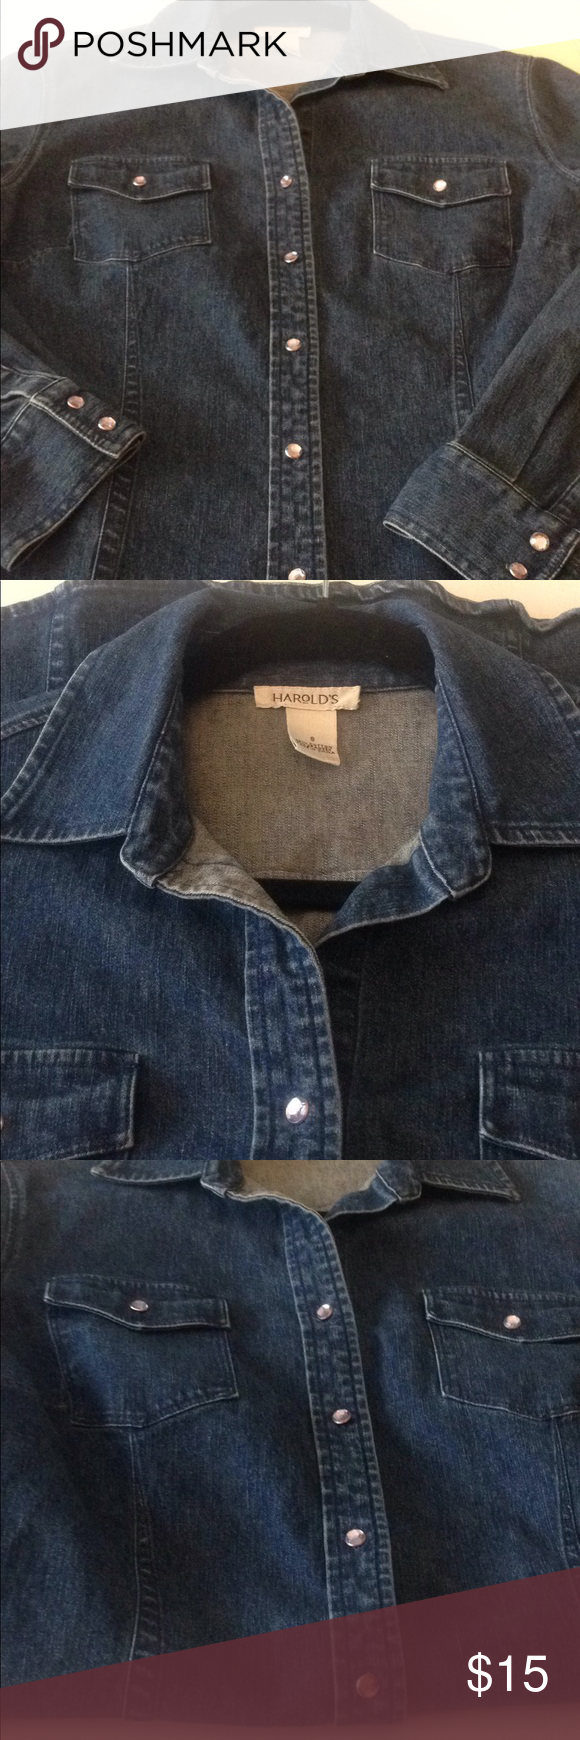 109a20d85a Harold s Jean Long Sleeve Buttoned Down Shirt Super cute Jean shirt with  Rhinestone buttons Size S Cotton 98%   Spandex 2% Harold s Tops Button Down  Shirts